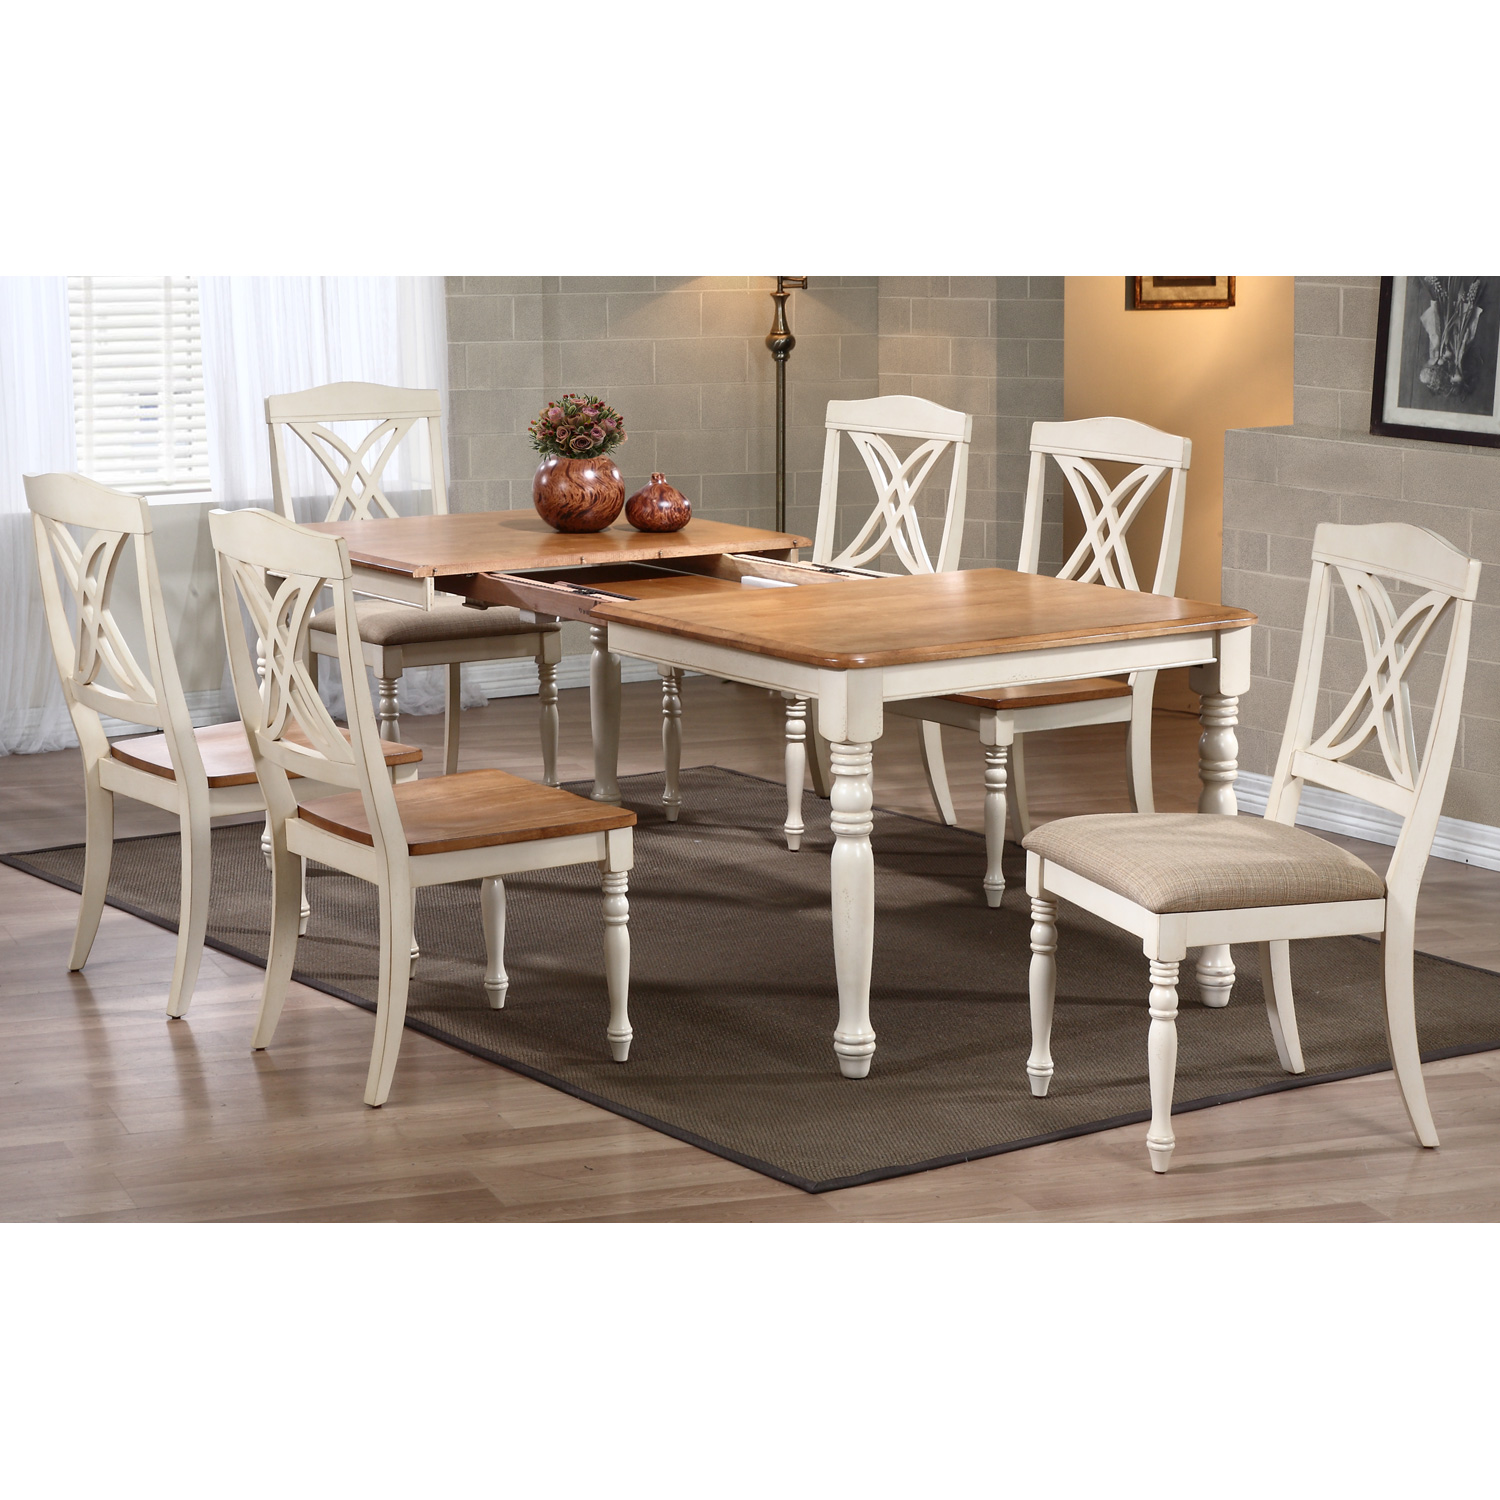 Meredith Extending Dining Table - Turned Legs, Biscotti & Caramel - ICON-RT-78-DT-LG-TU